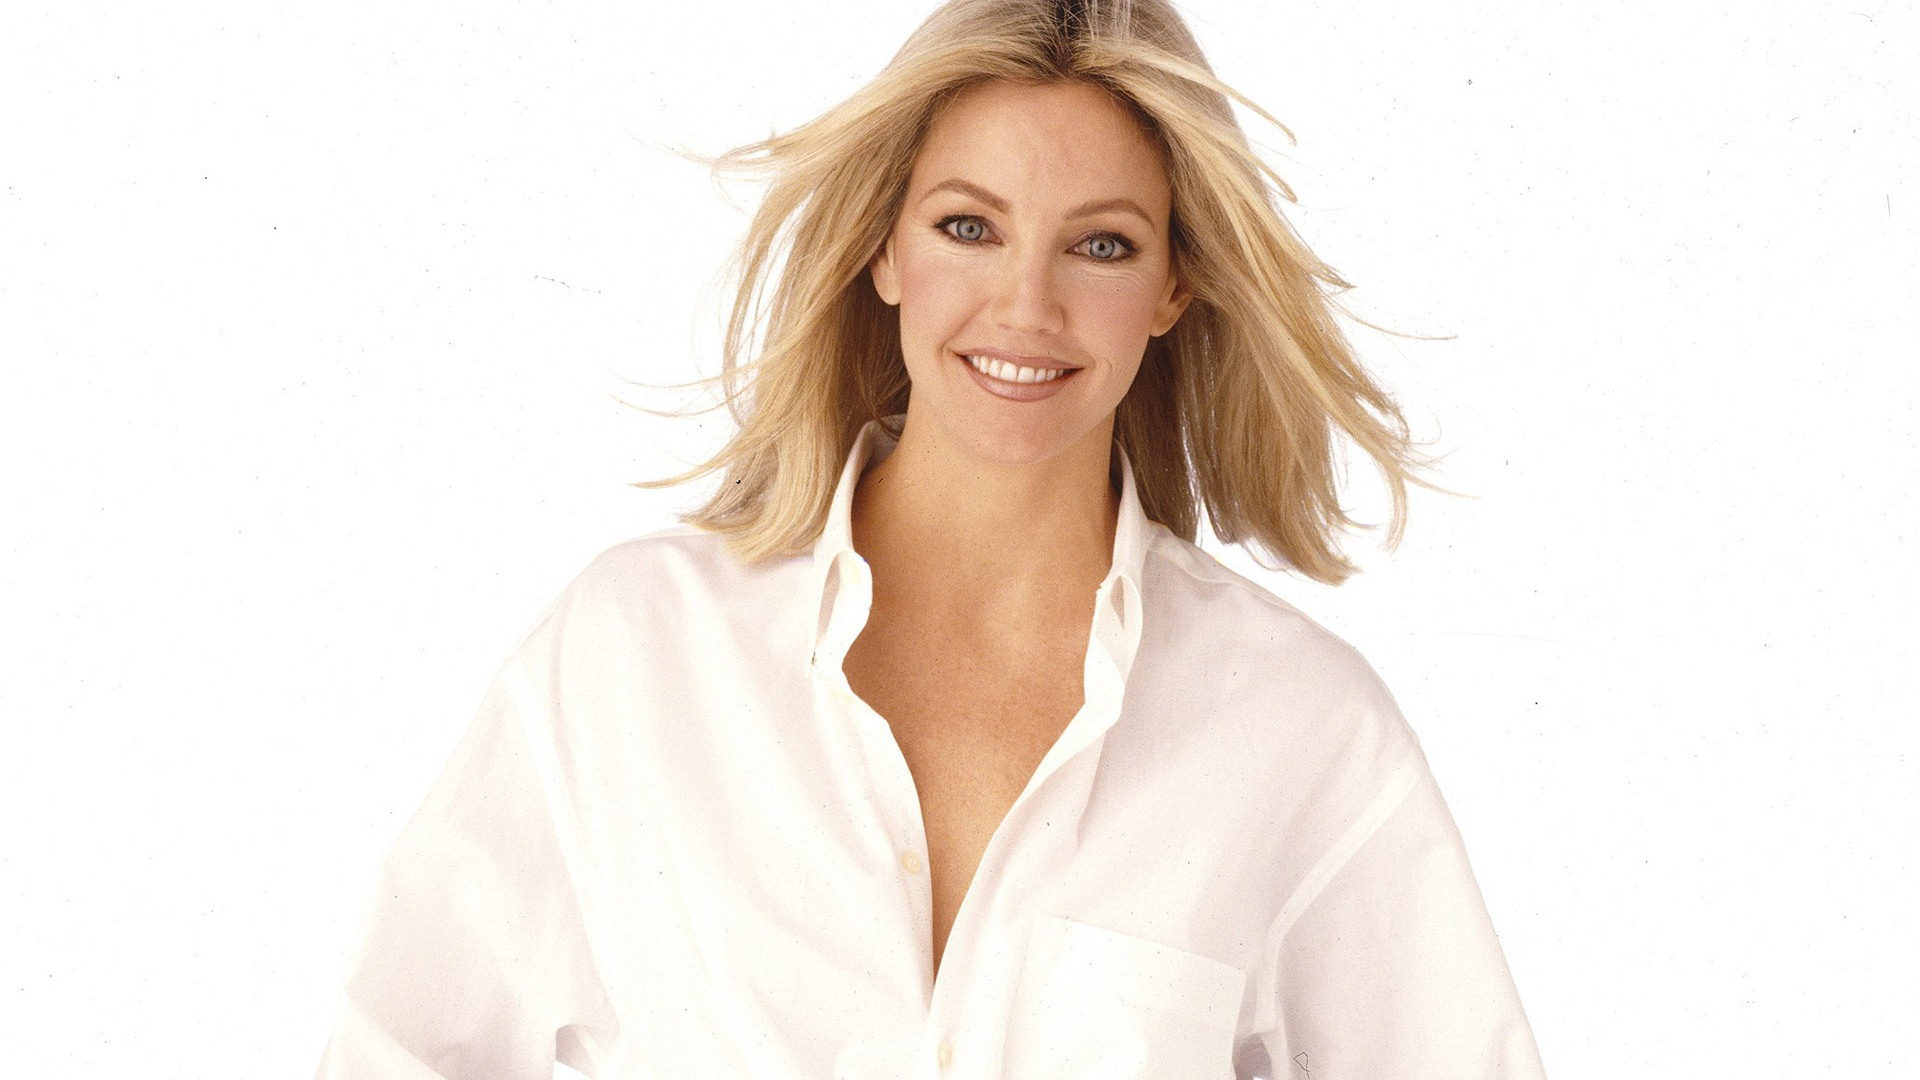 New Amazing Heather Locklear  hd wallpaper Wallpaper